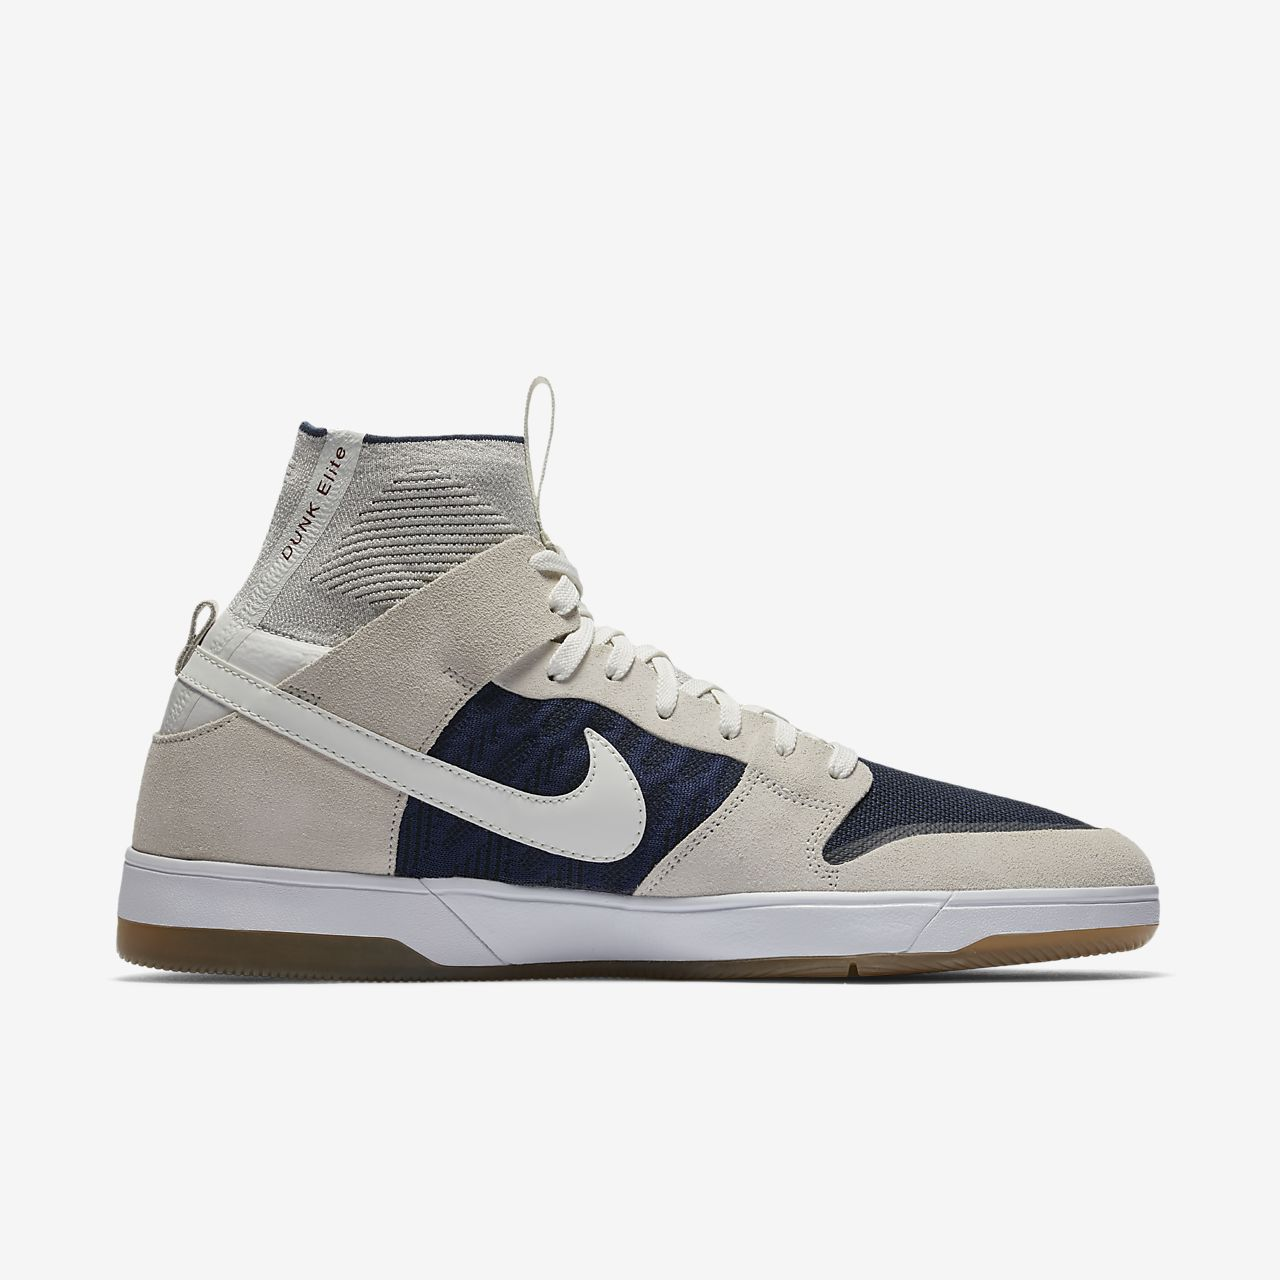 Nike SB Dunk Elite High QS Men's Skateboarding Shoes White kK7162N